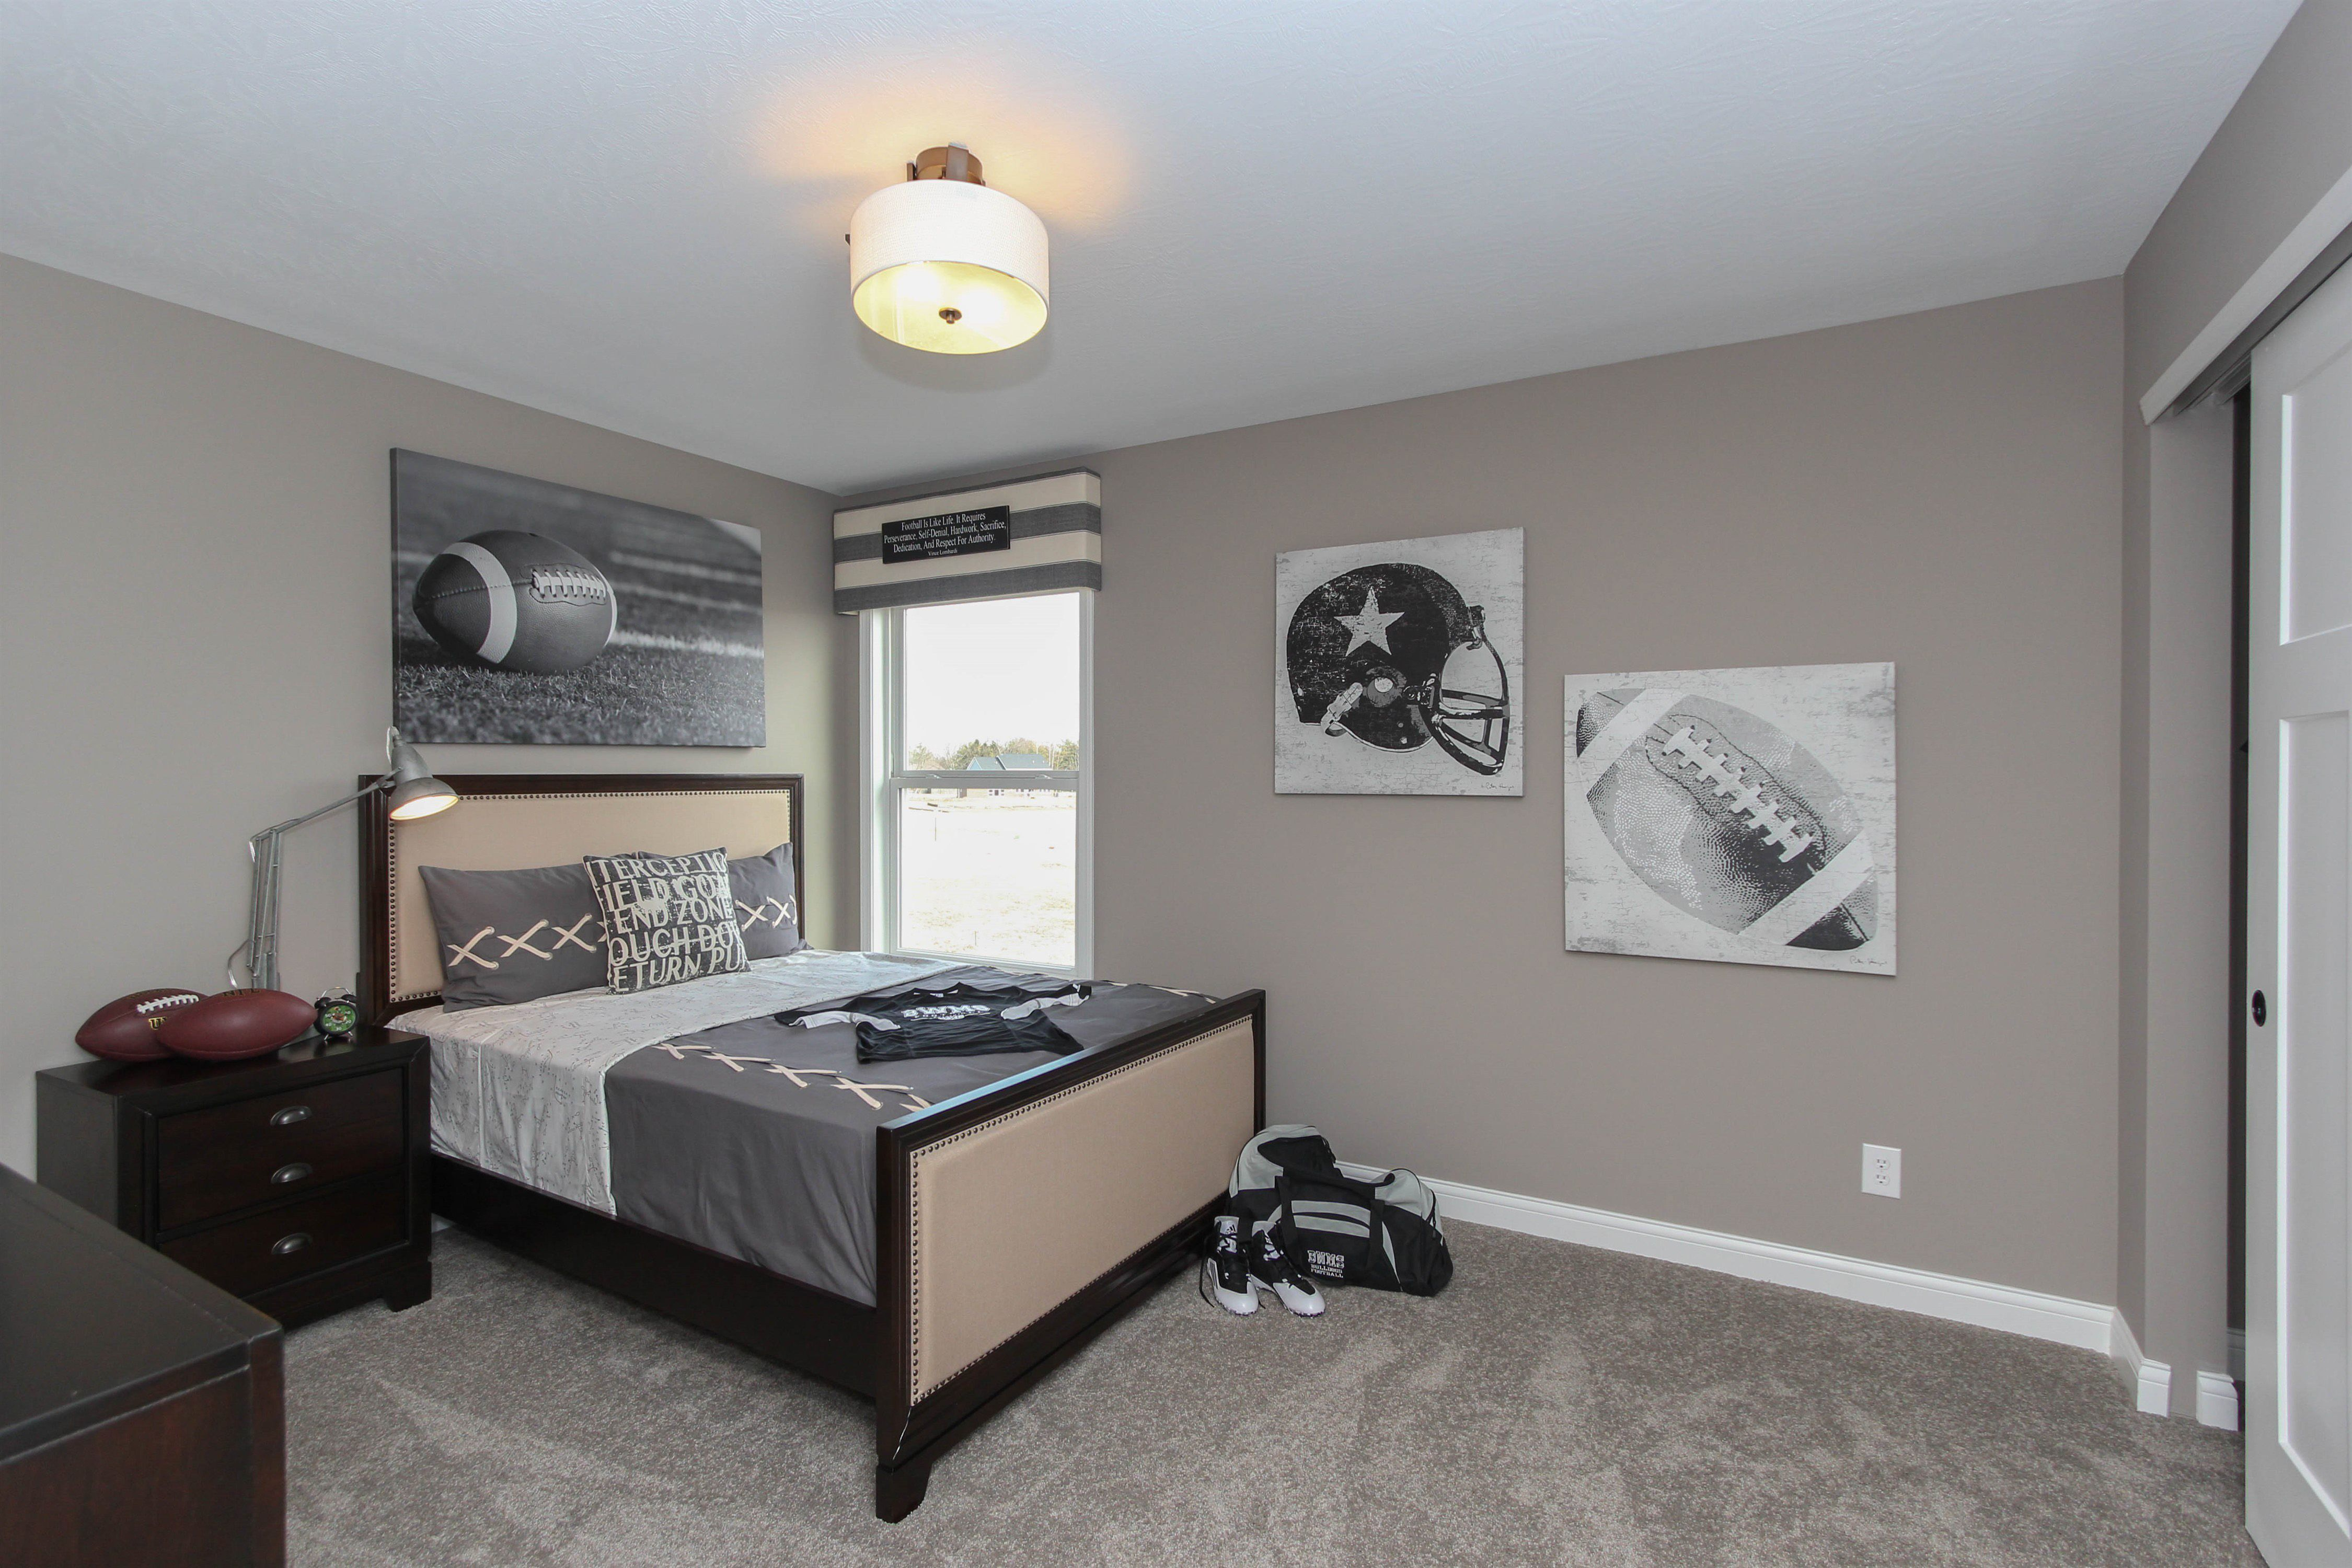 This Football Themed Kidu0027s Bedroom Is Classy And Comfortable. Seen In The  Morris At The